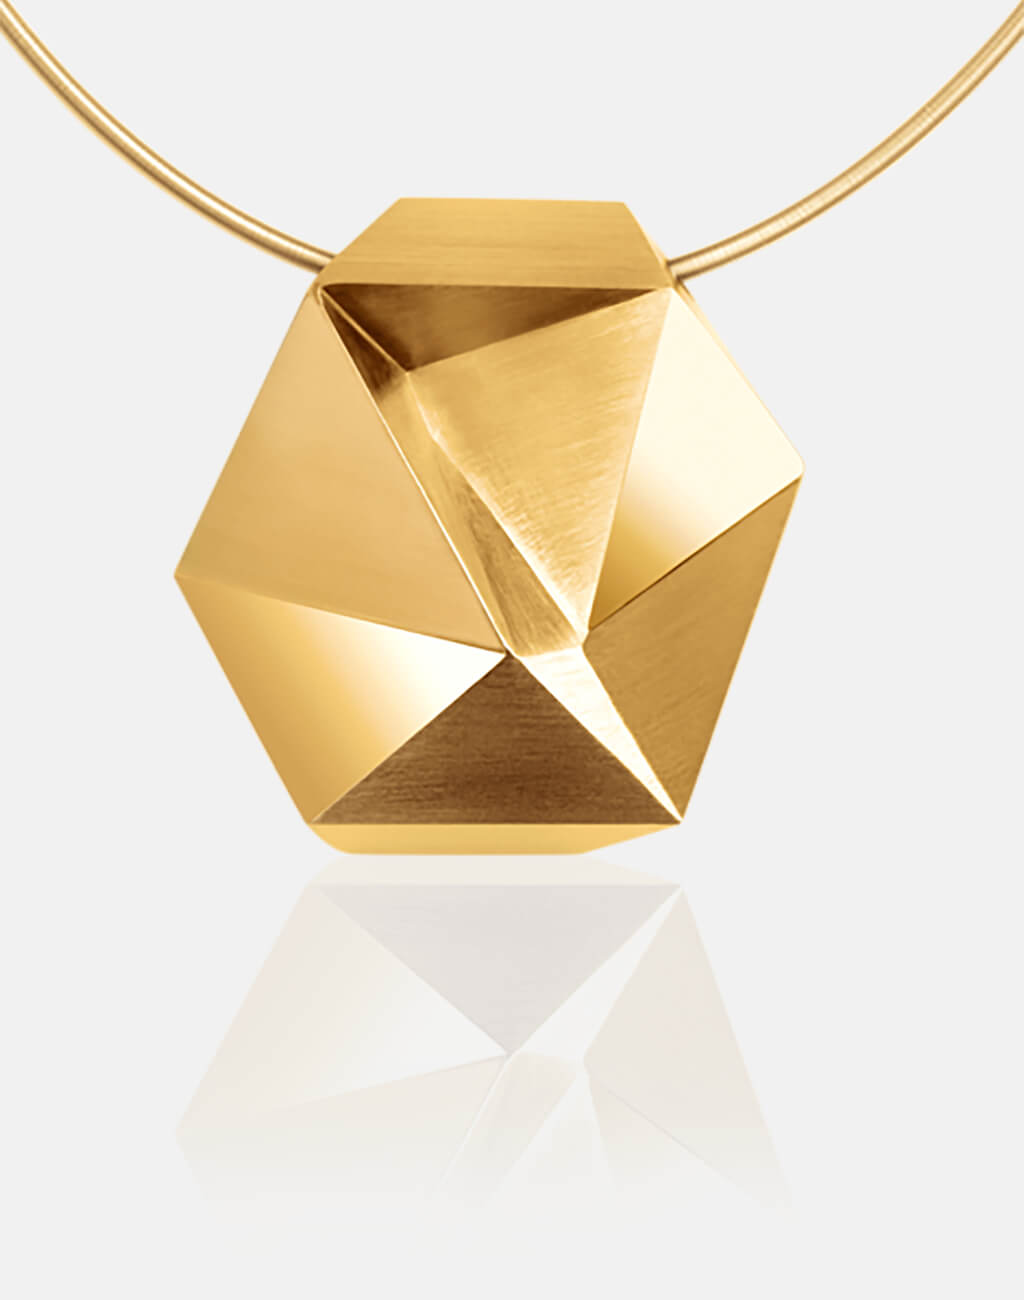 Tectone | Collier, Kettenanhänger, Kette 750/- Gelbgold | necklace, pendant, 18kt yellow gold | SYNO-Schmuck.com